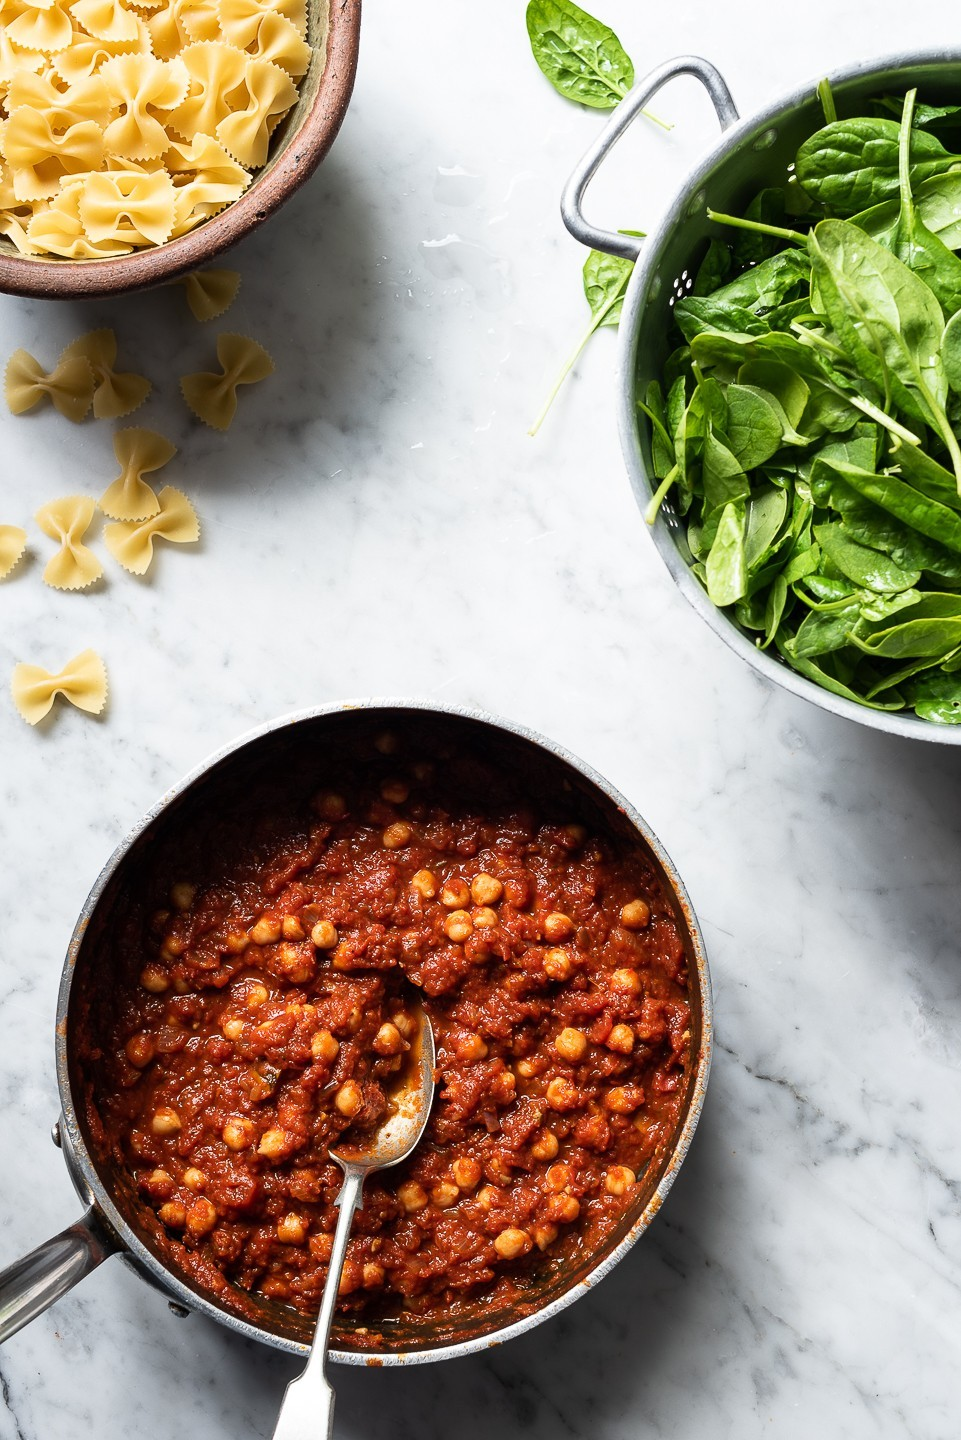 Spinach and chickpea pasta | Bibby's Kitchen @ 36 | A food blog sharing recipes, stories and travel